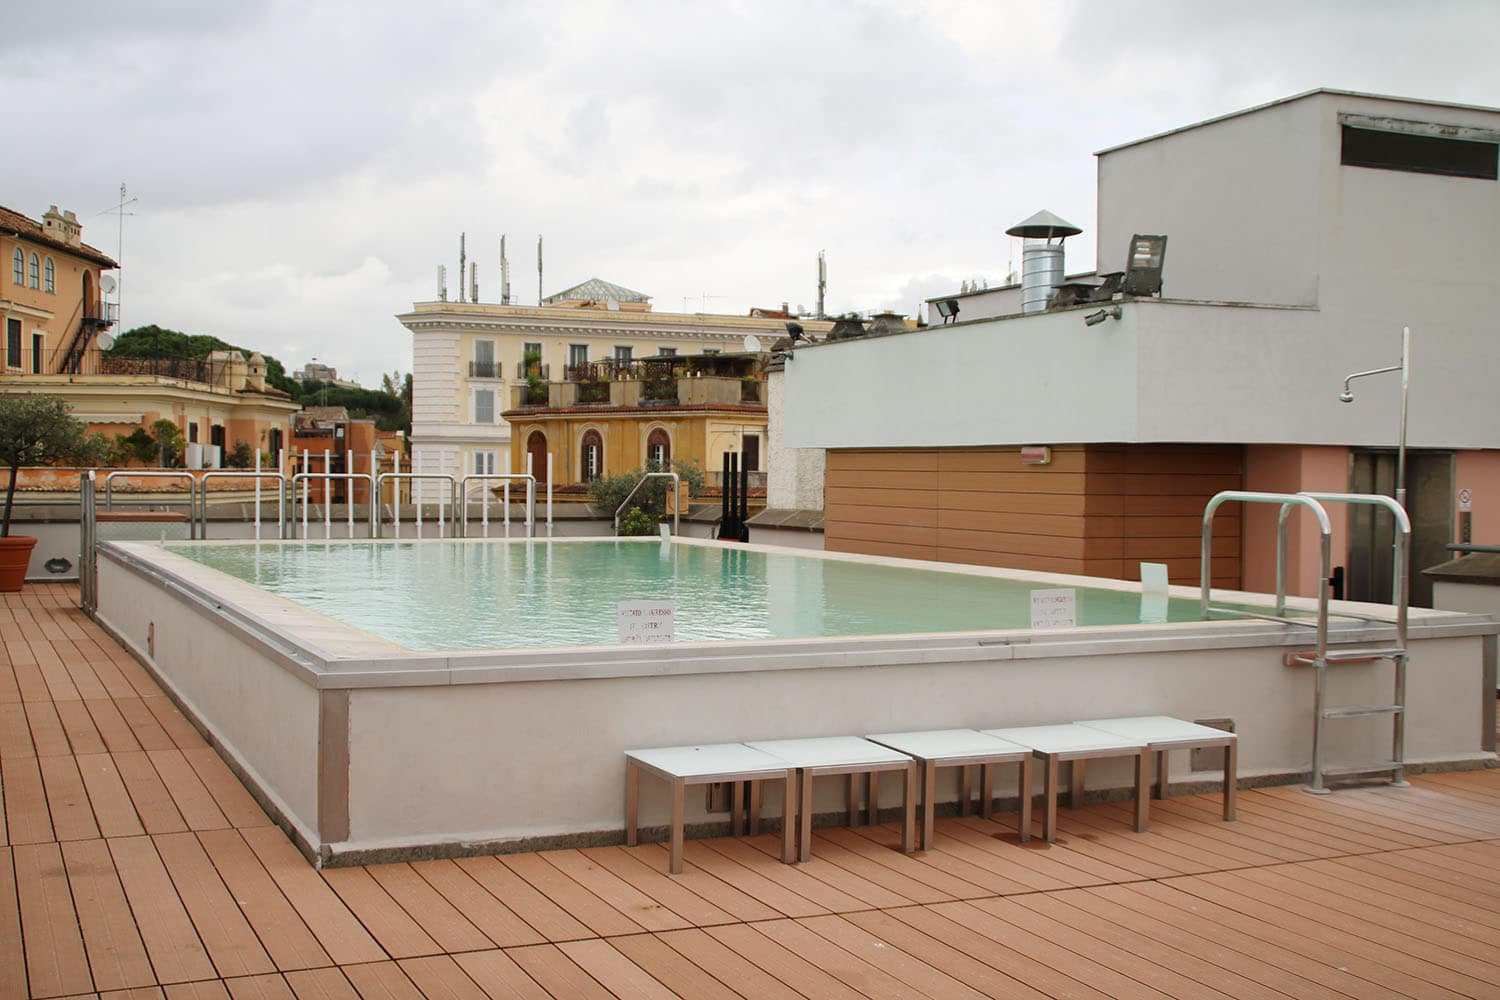 accor-hotels-mercure-roma-centro-colosseo-10